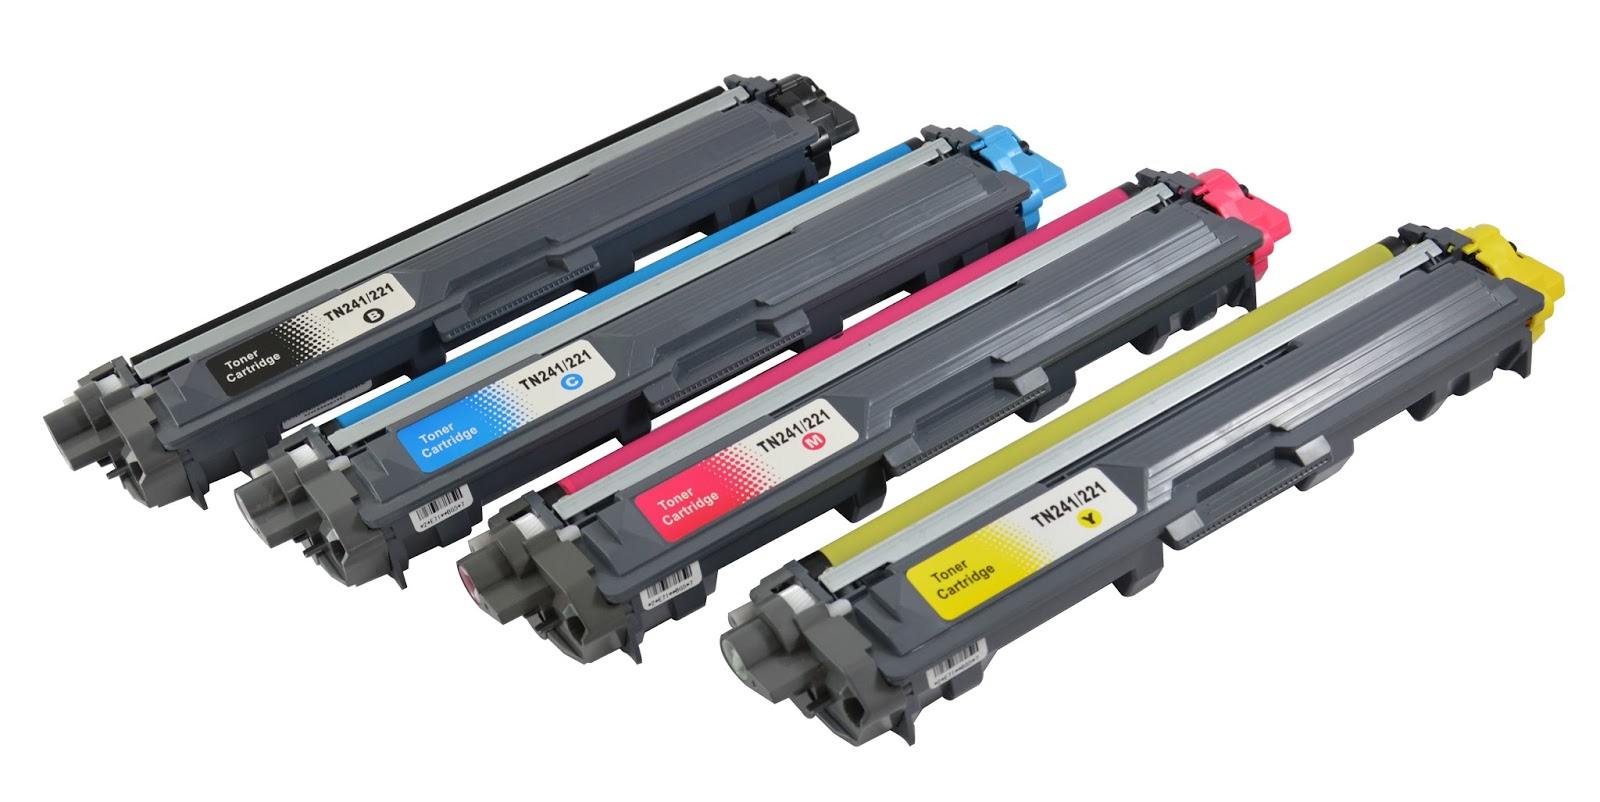 TONER COMPATÍVEL TN241 CORES BROTHER